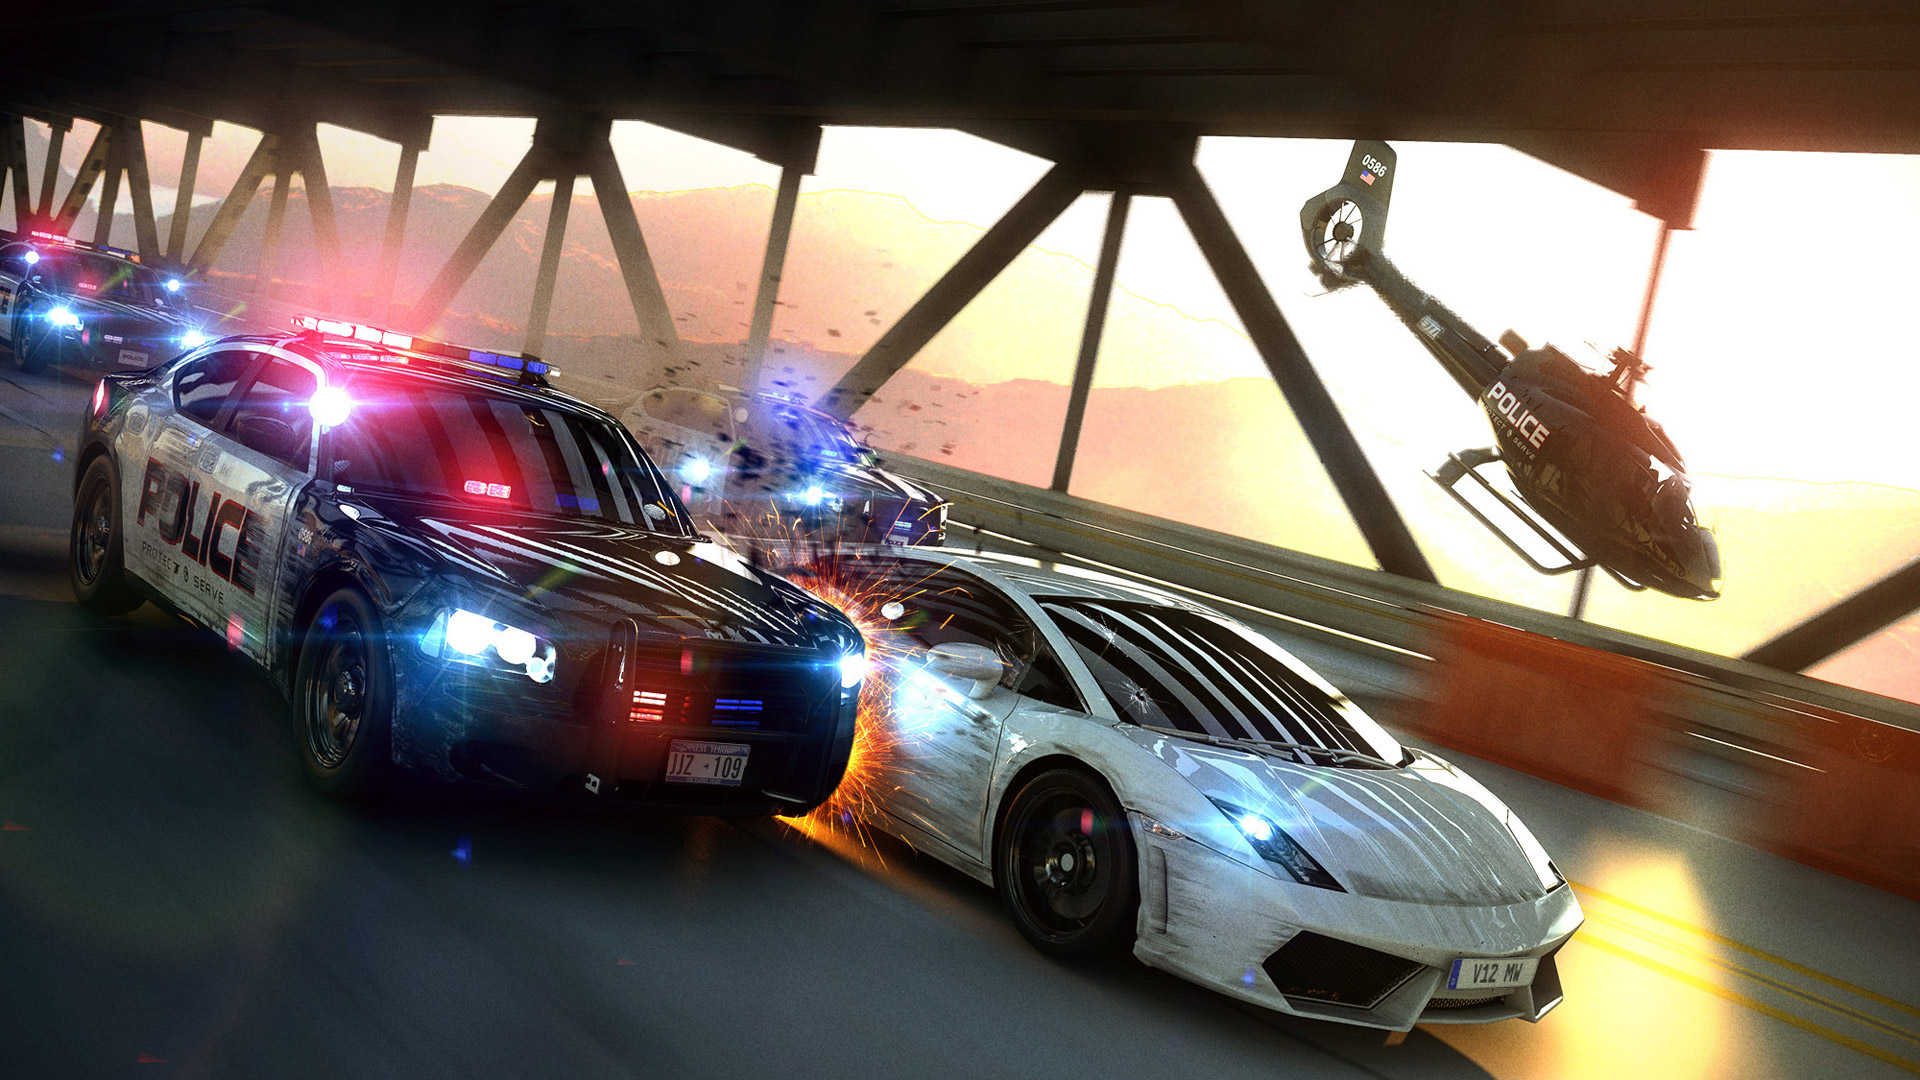 Free Need for Speed: Most Wanted (2012) Wallpaper in 1920x1080